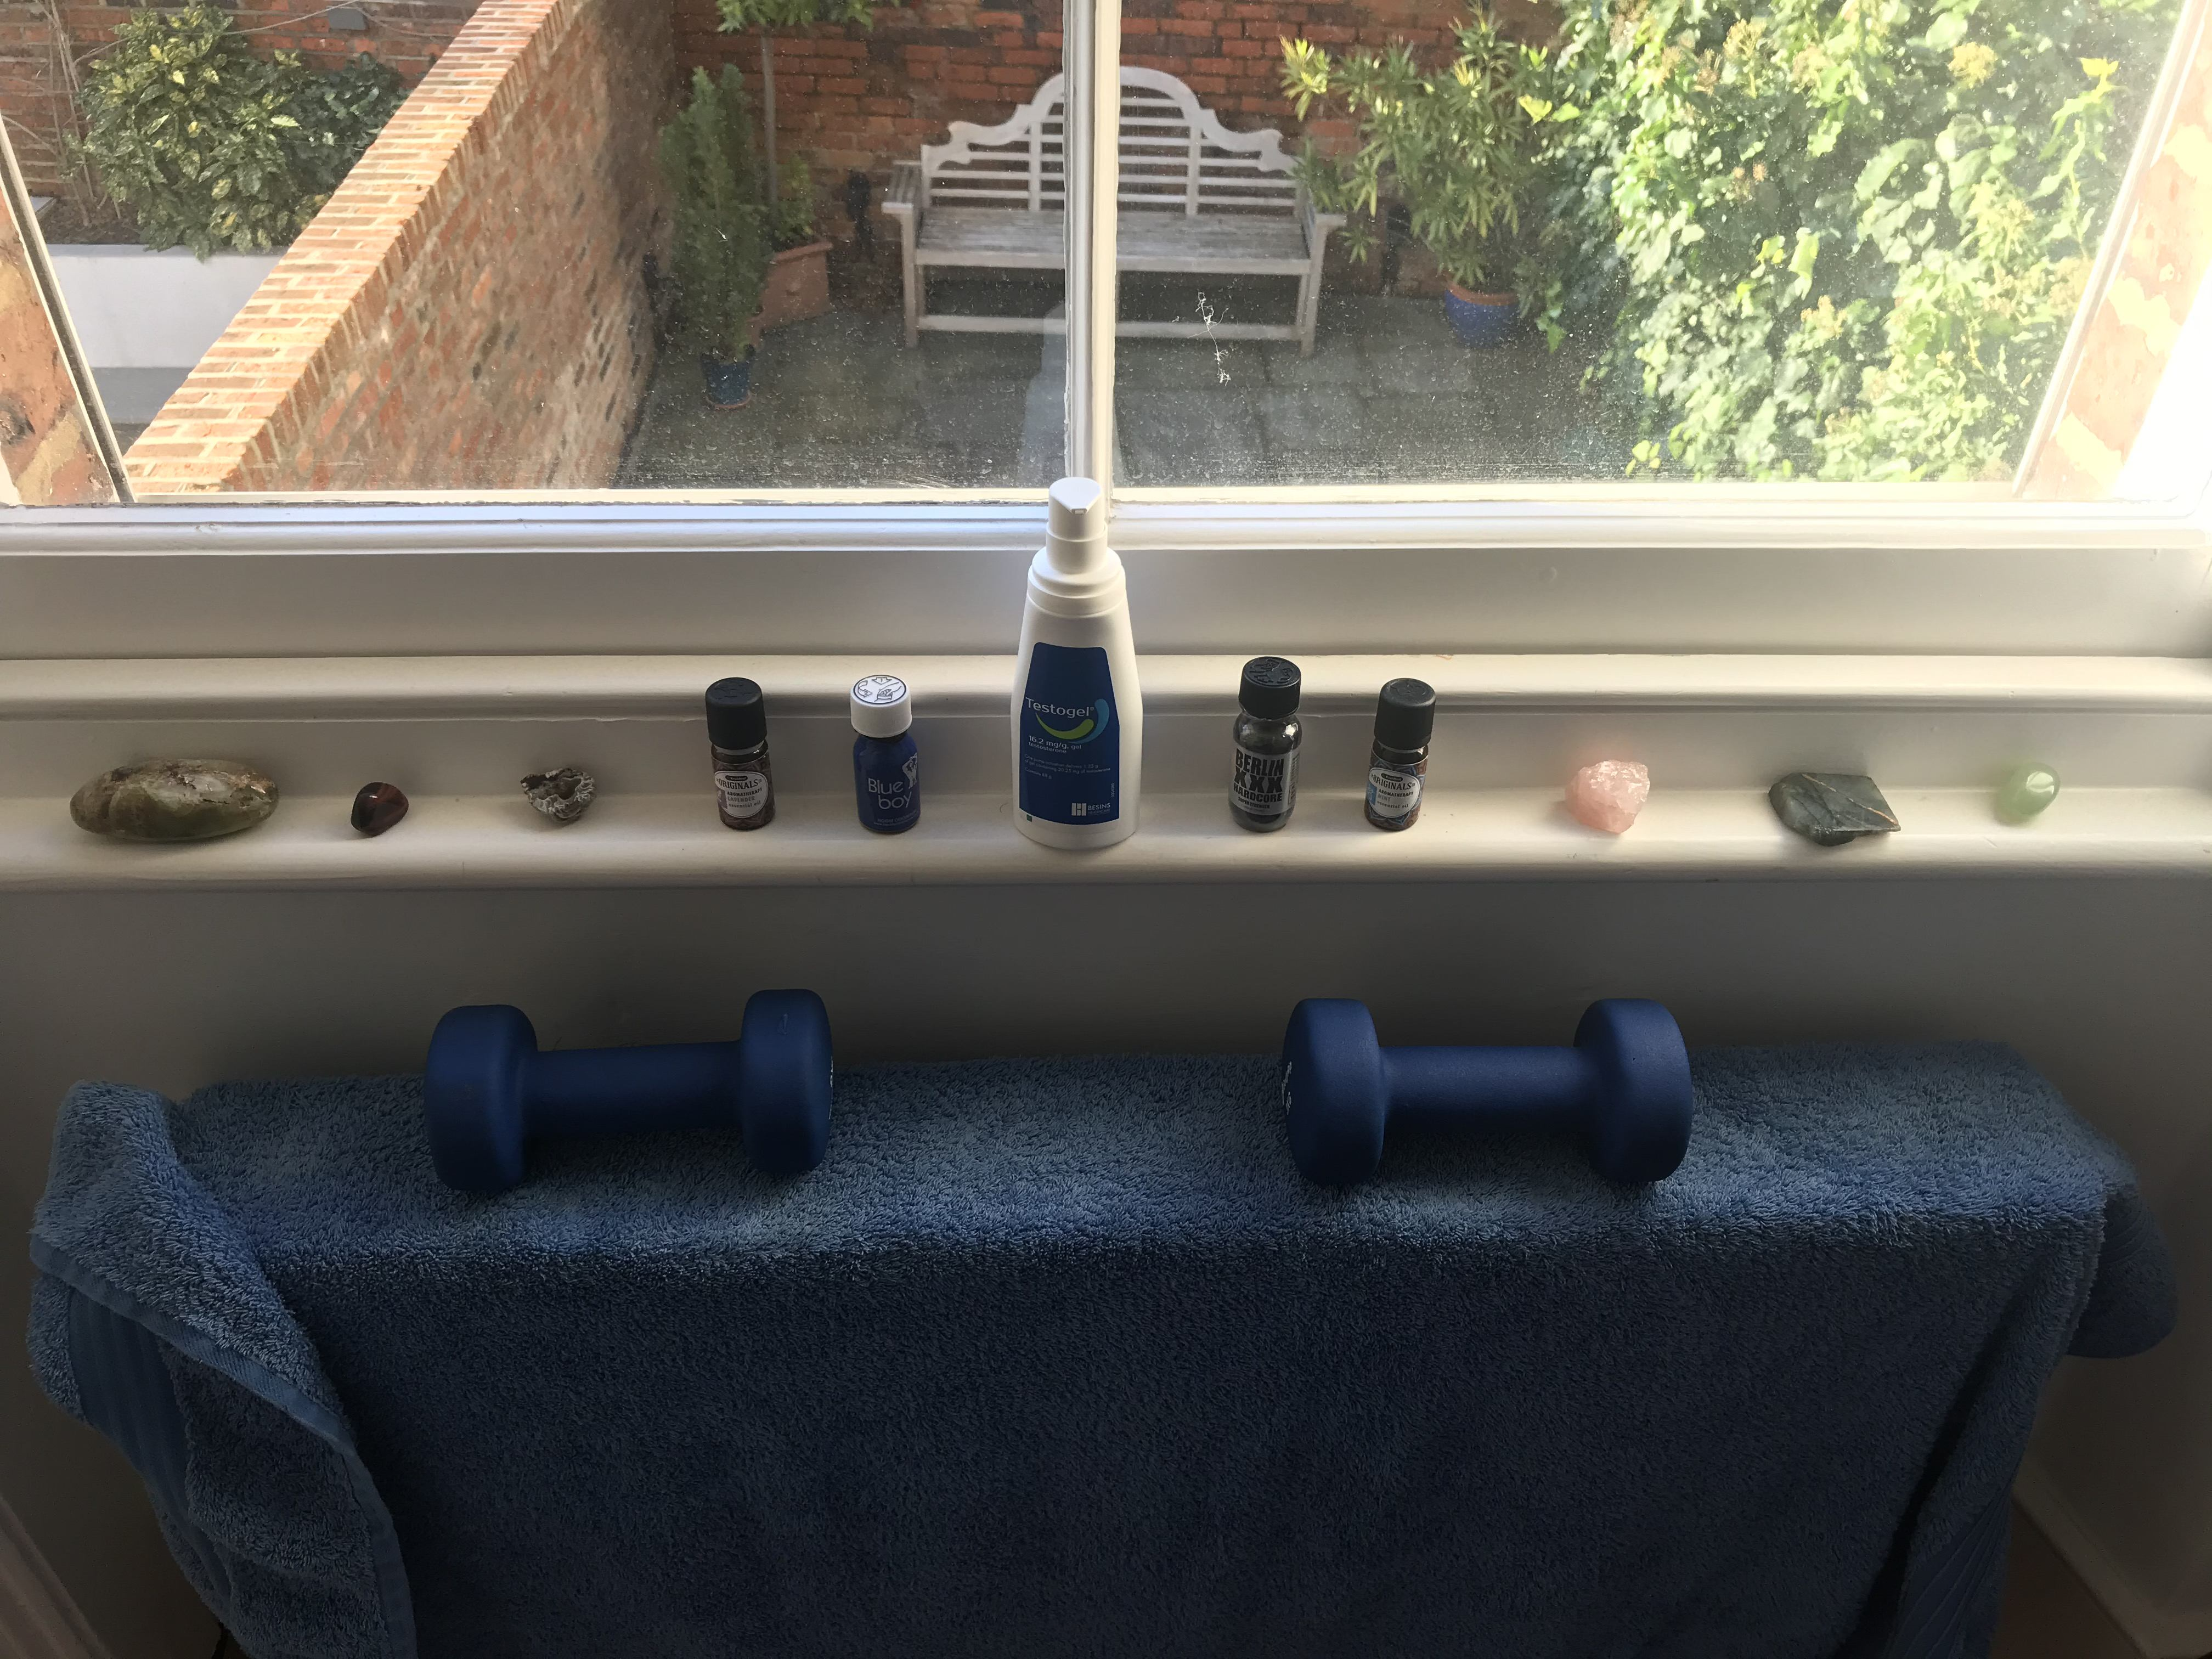 An alter: a bottle of testogel on a thin window ledge with either side of it various small bottles and crystals. Below is a blue towel on a radiator, weighted down by two blue free weights. The image is sunny, and out the window at the top you can see a terrace garden below with a wooden bench and some greenery.